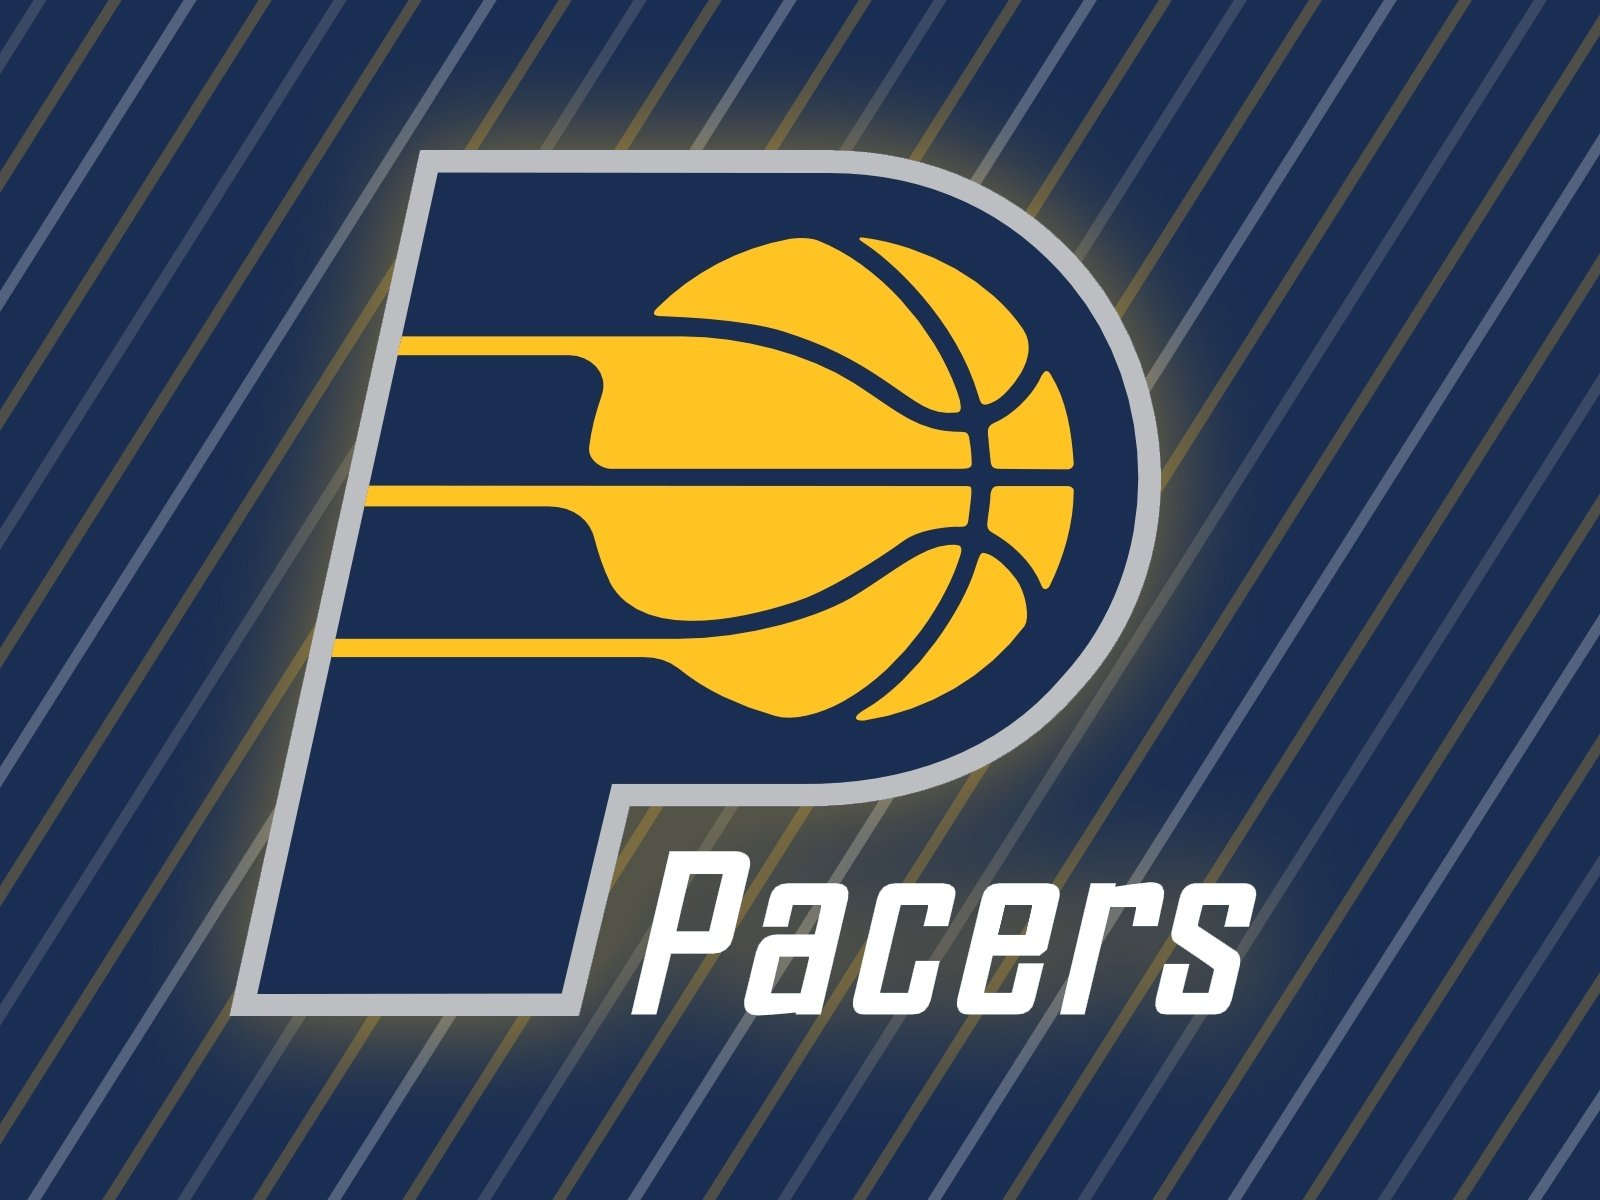 INDIANA PACERS nba basketball 32 wallpaper background 1600x1200